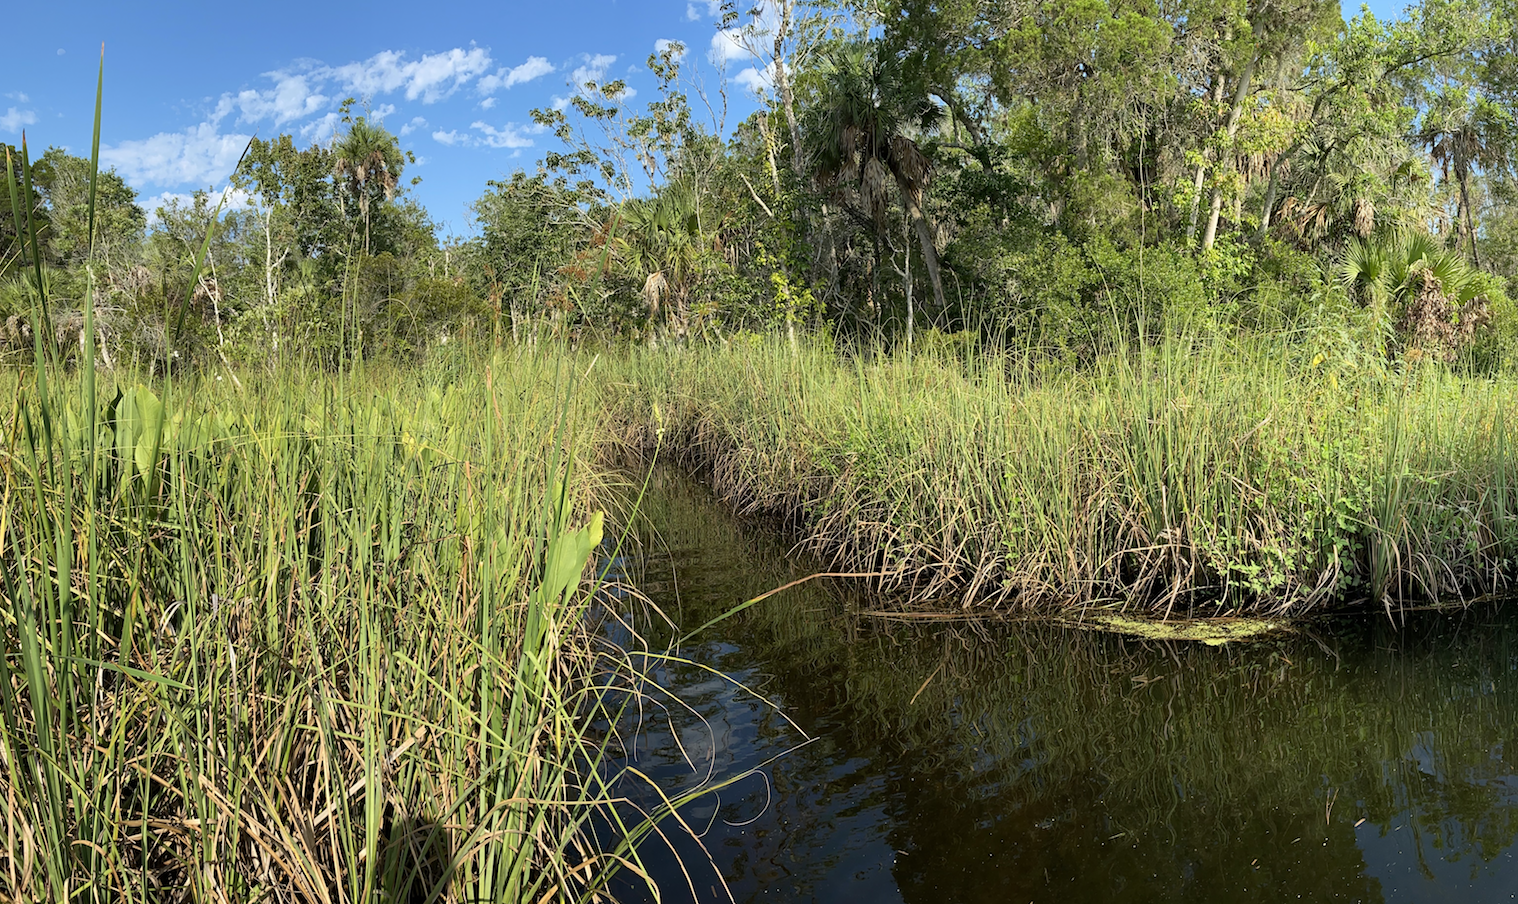 This image on Walker on the Water depicts a sawgrass prairie where snakes and Alligators might live.